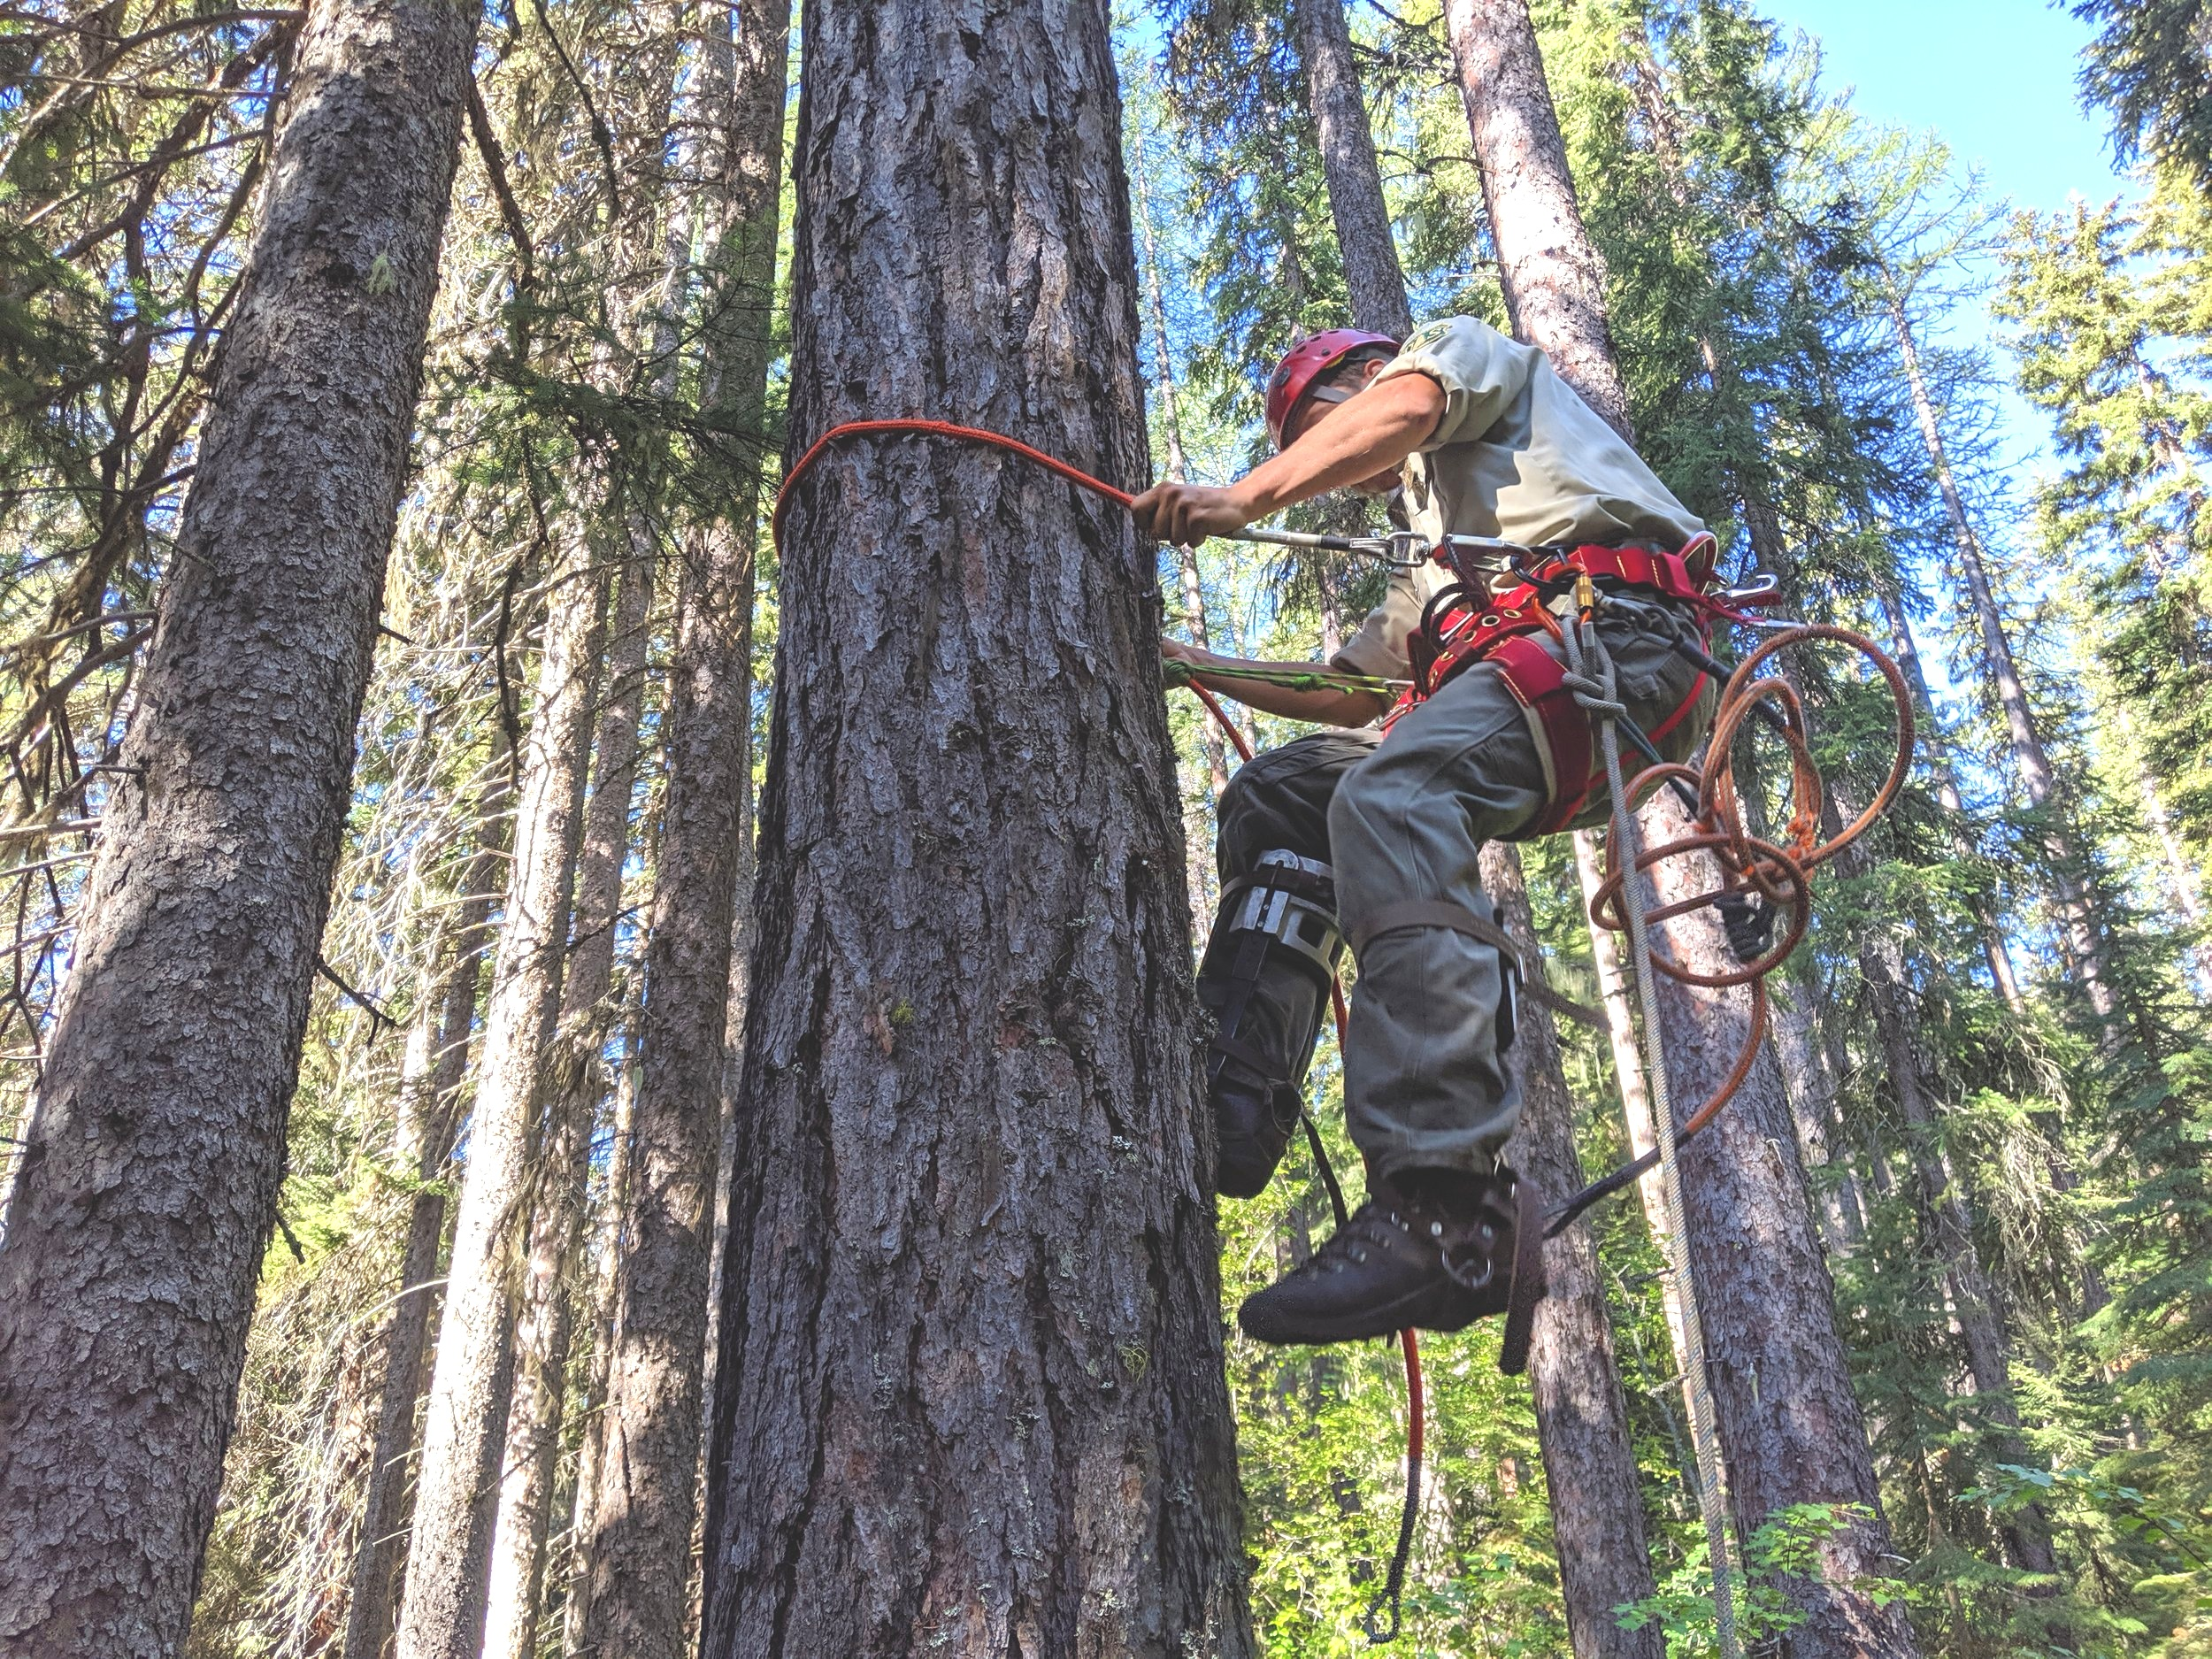 Adam Washebek climbs the Larch Tree to rig it for felling